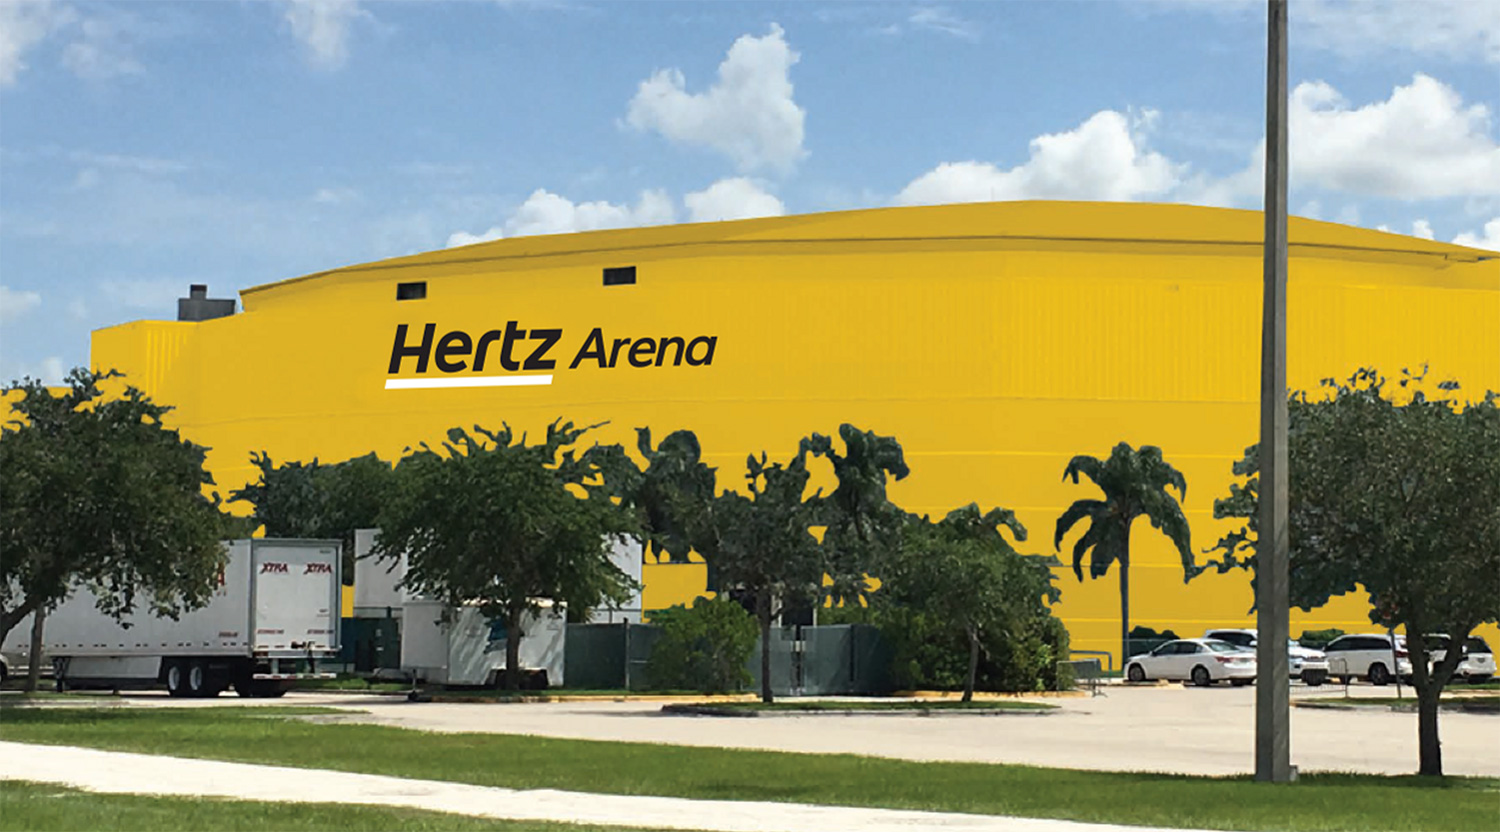 'Make this building new again': Hoffmann already replaces Hertz Arena sign, rips up luxury suites